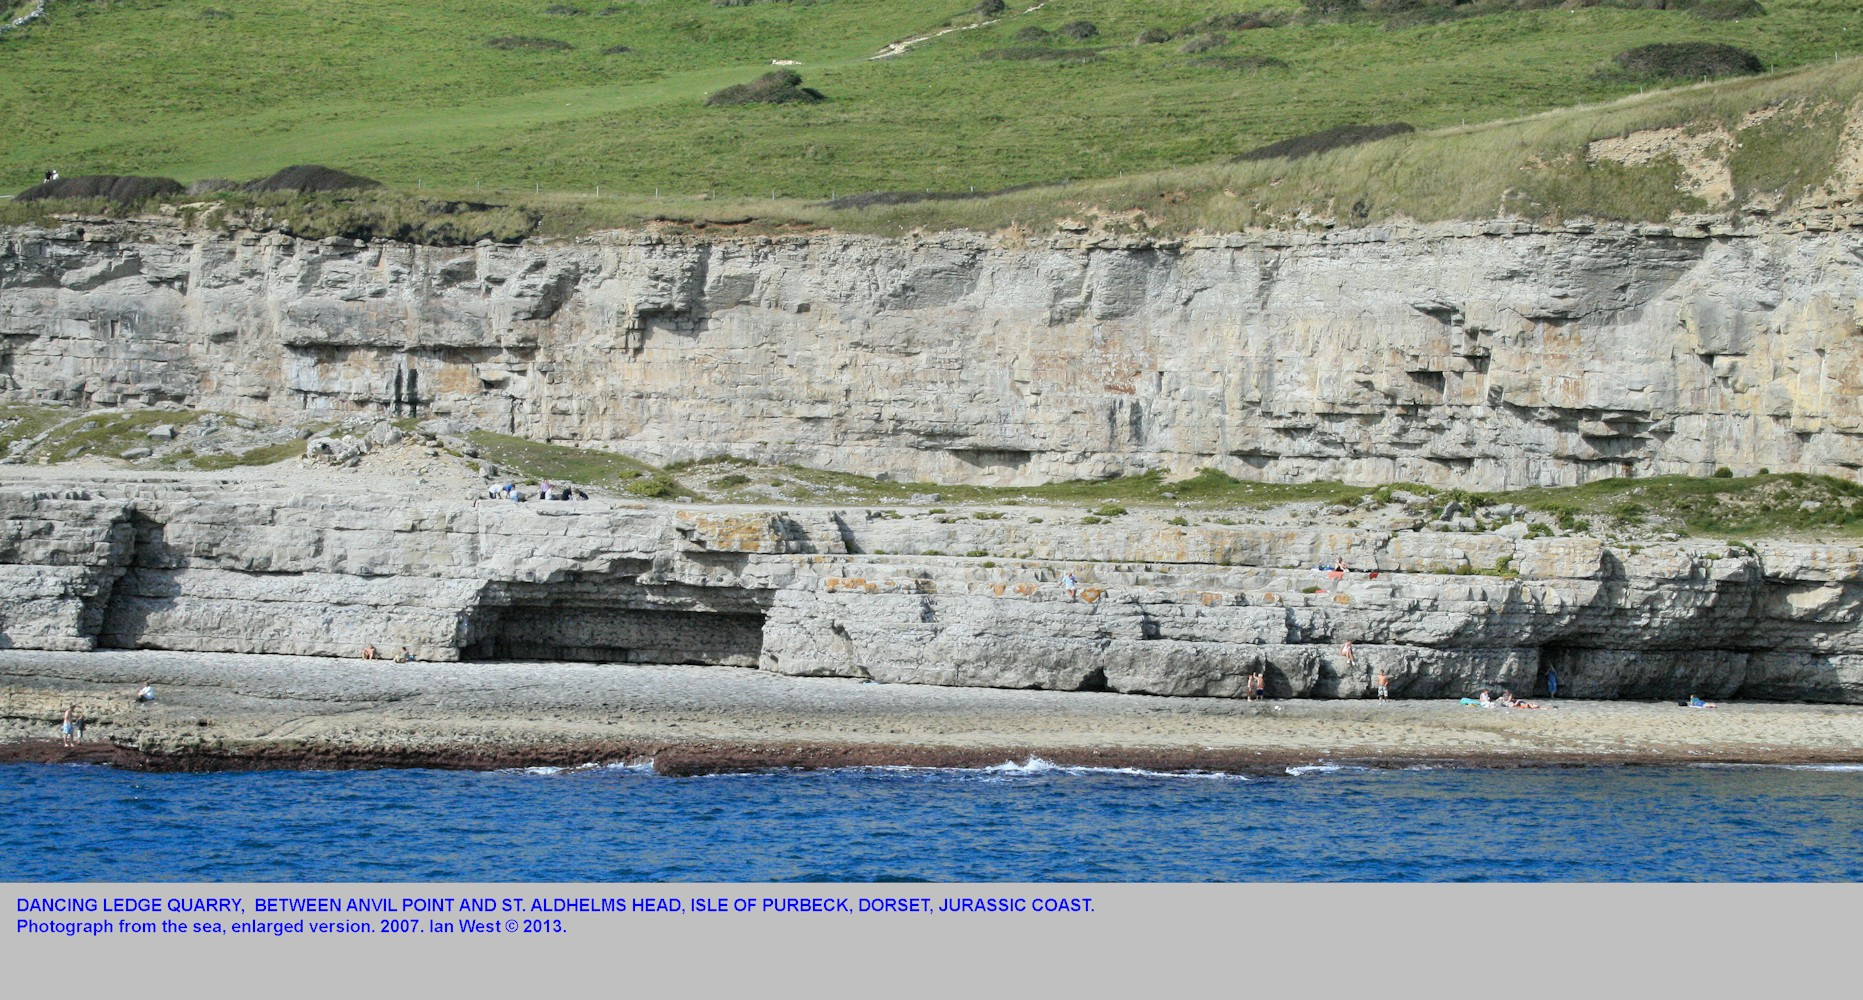 Enlarged view of Dancing Ledge, Jurassic Coast, near Swanage, Isle of Purbeck, Dorset, seen from a boat and showing some aspects of the Lower Ledge, 2007